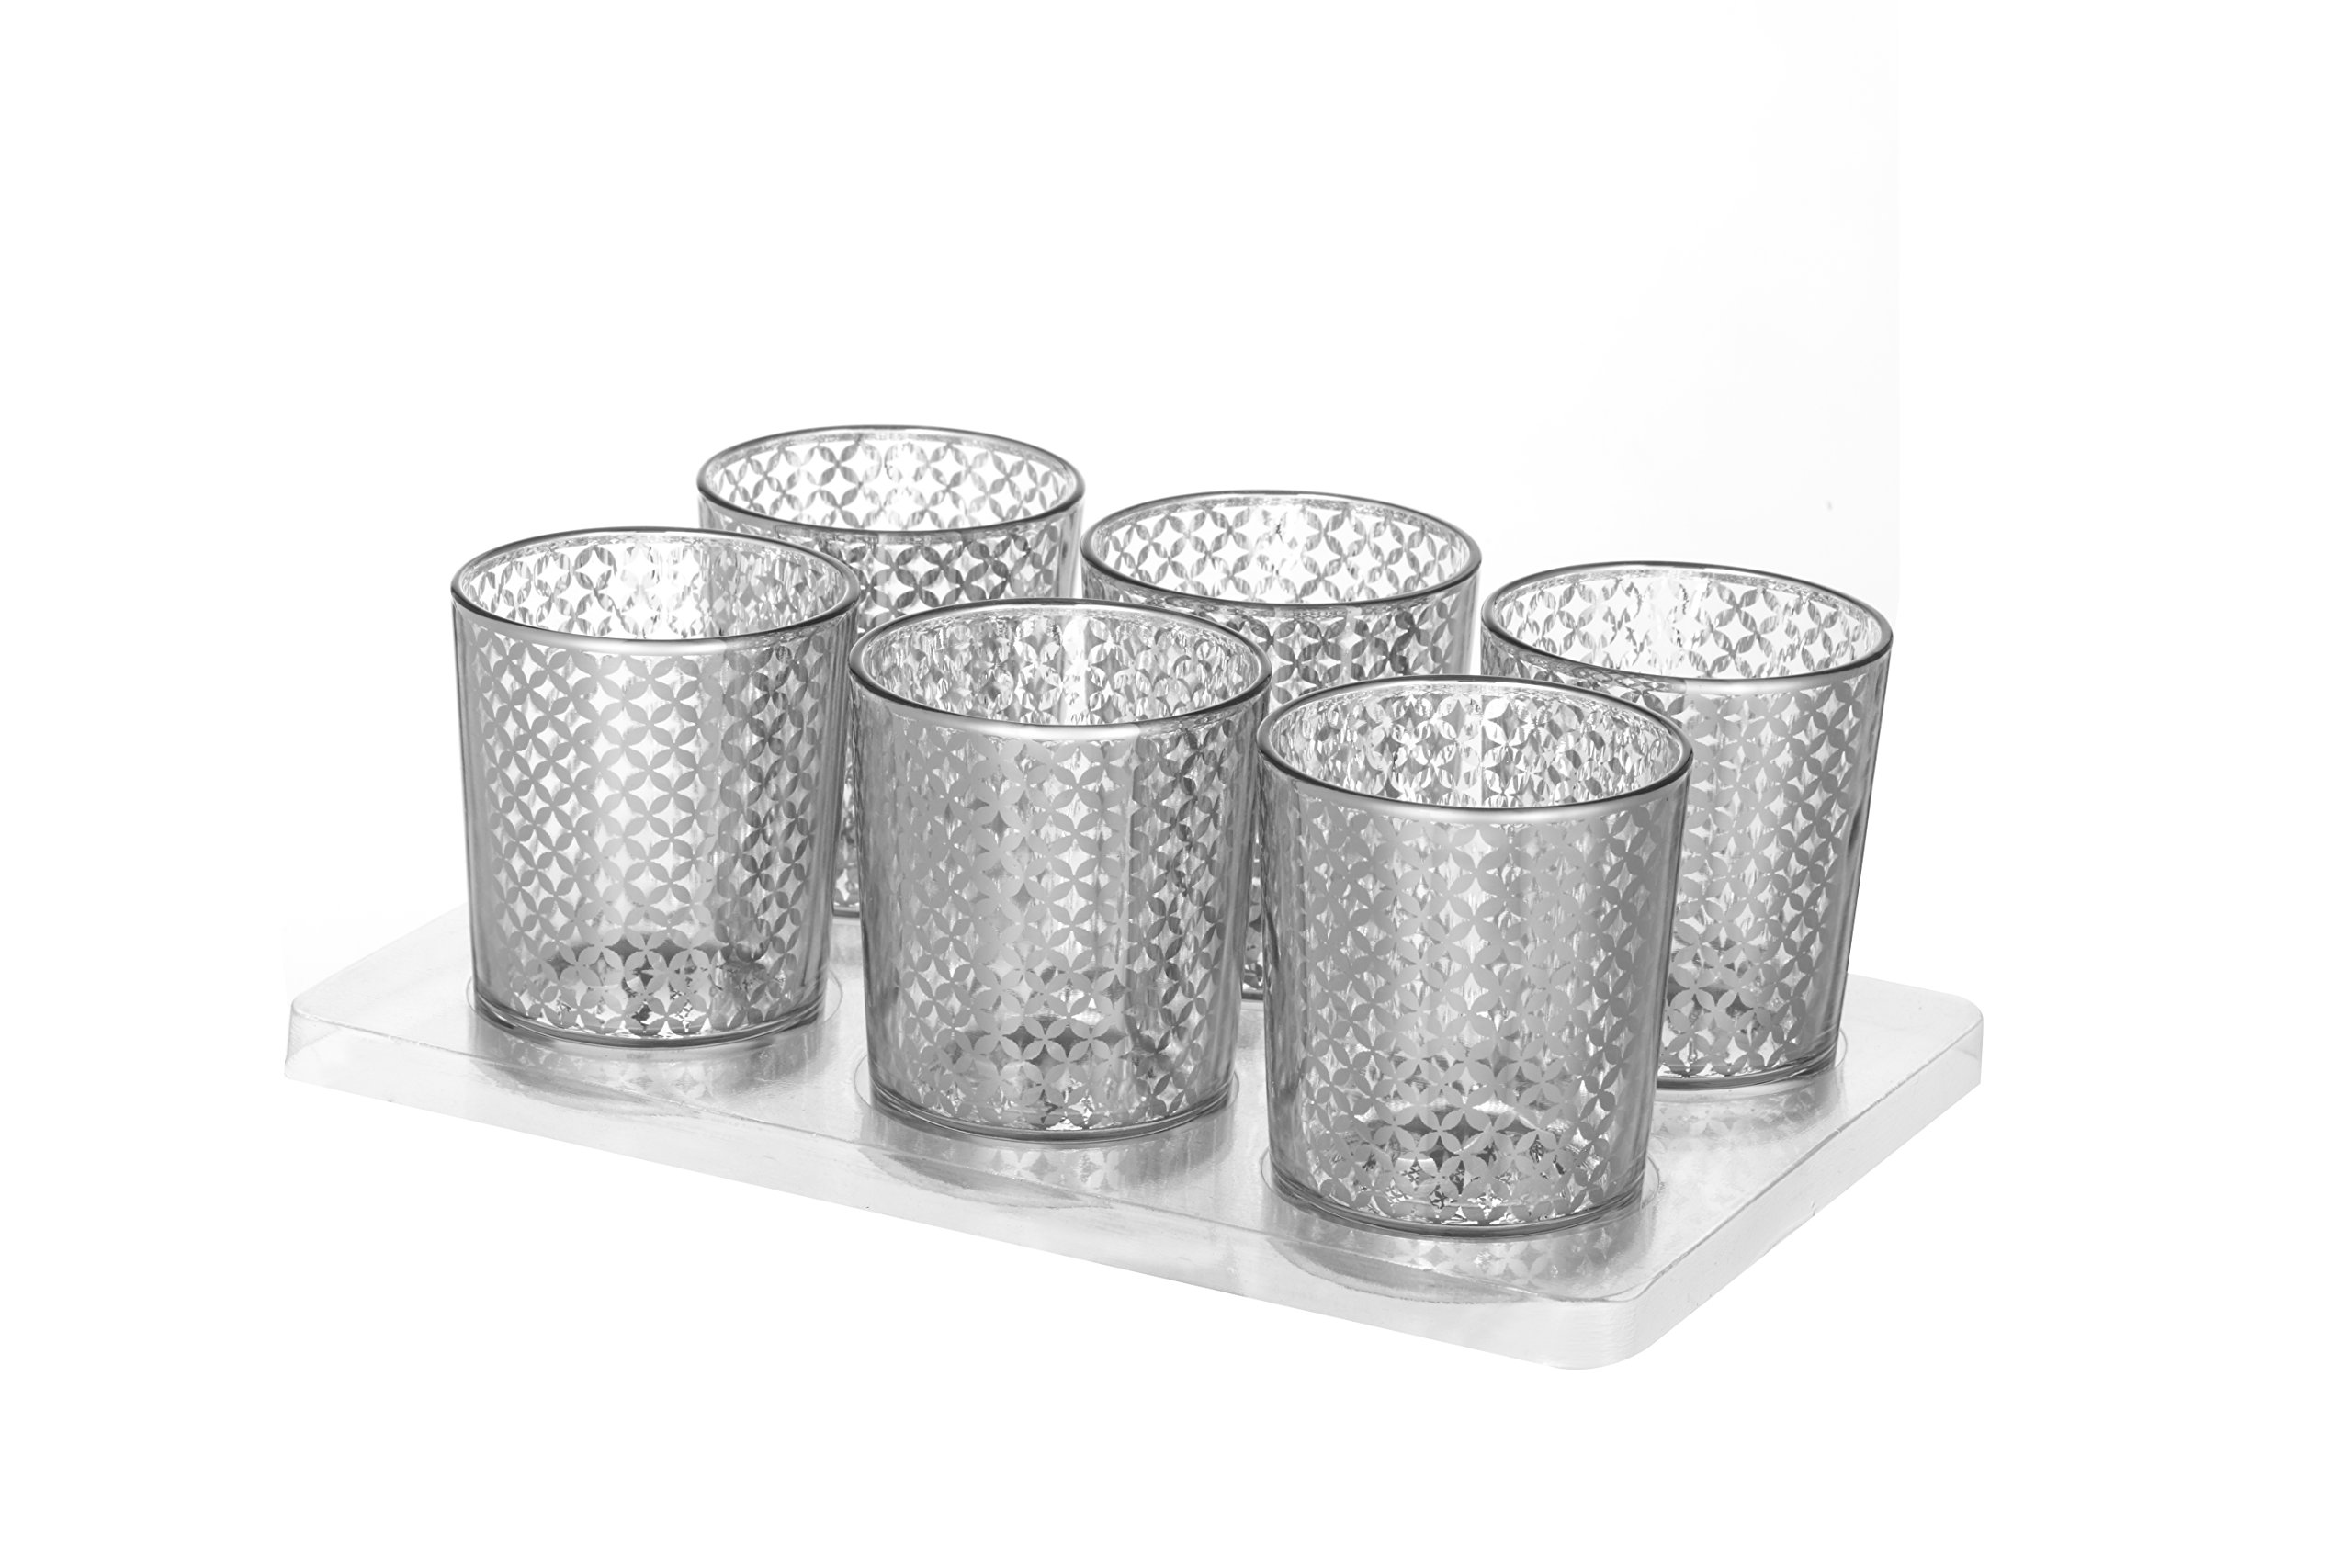 V-More Laser Cut Mercury Glass Votive Candle Holder Tealight Holder 2.55-inch Tall Set of 6 For Home Decor Wedding Party Celebration (Silver Lattice)